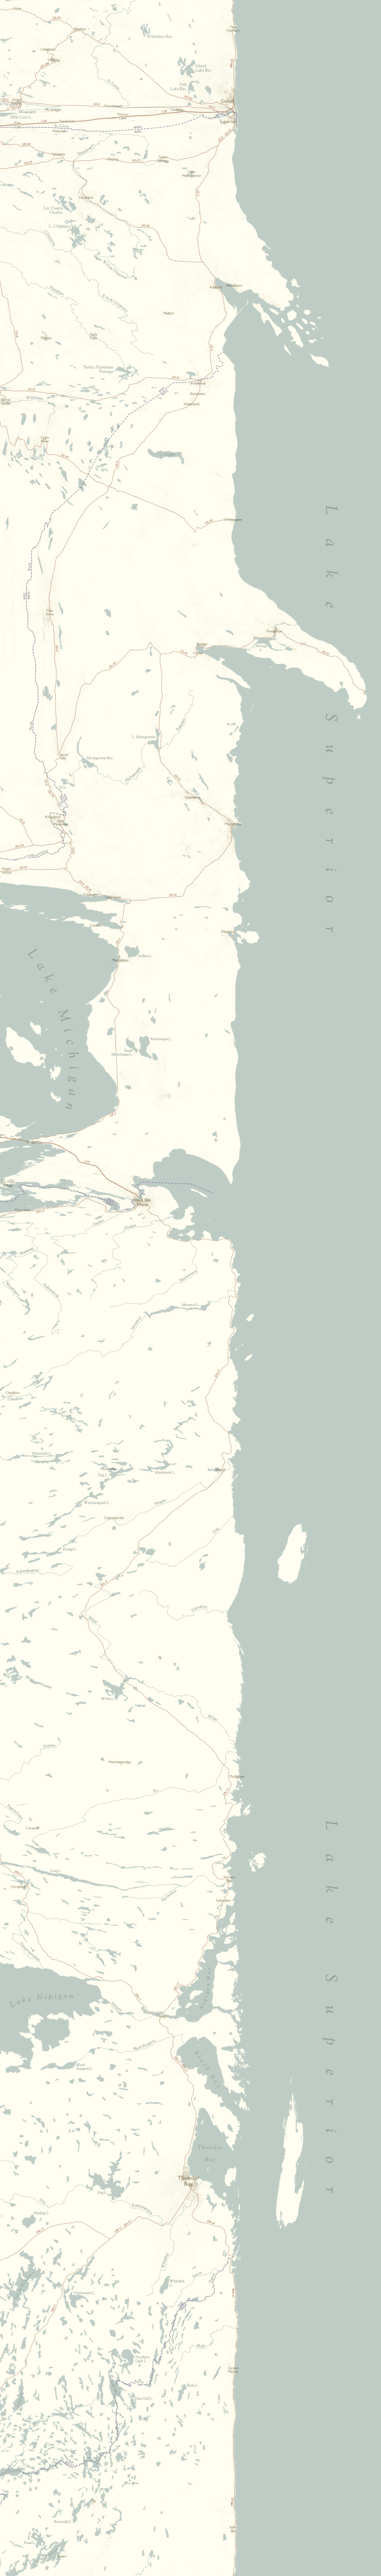 A linear map of Lake Superior